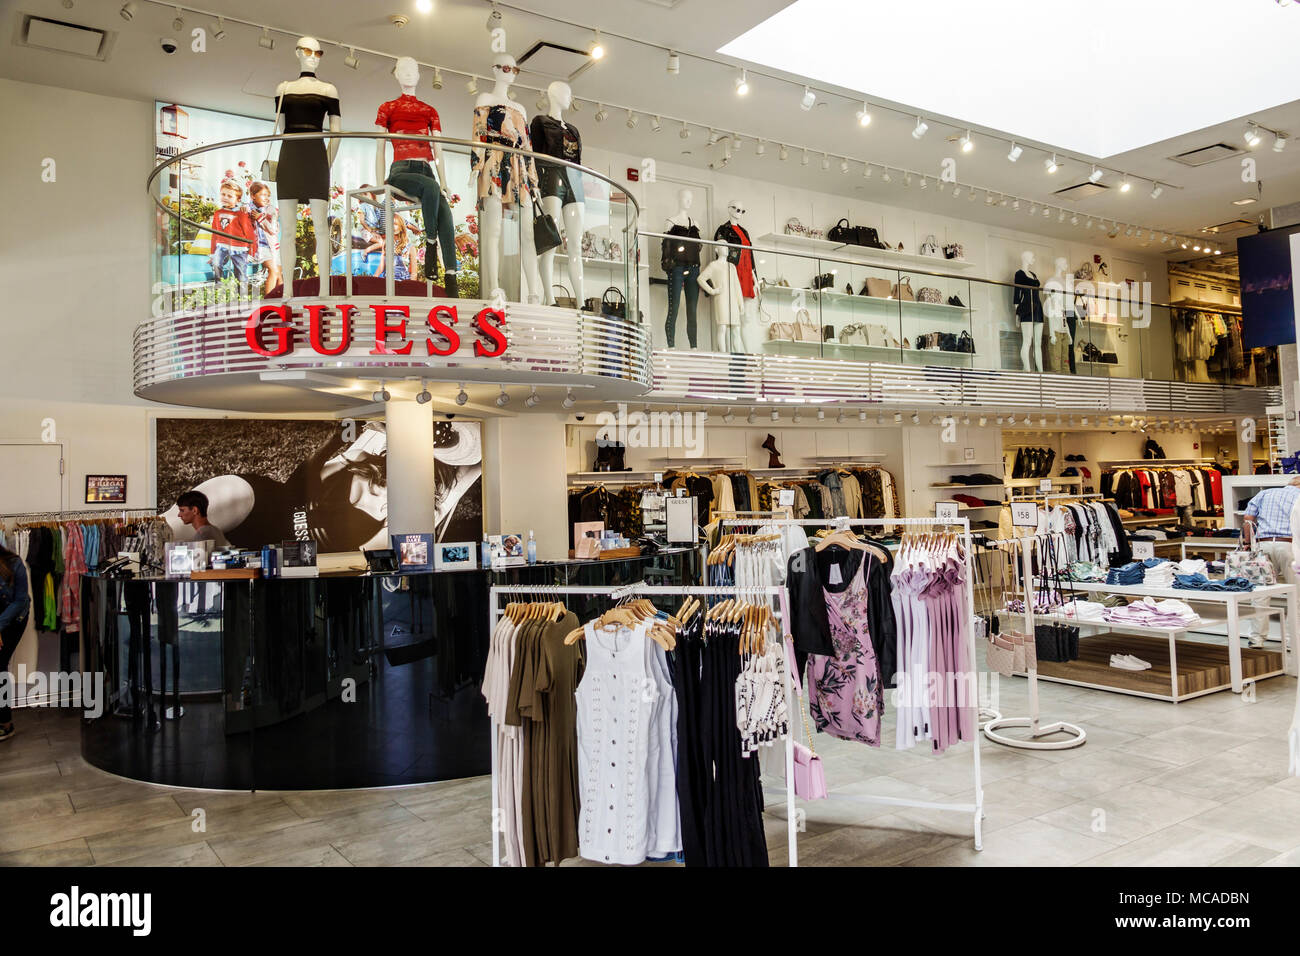 florida miami beach lincoln road guess clothing brand retail trendy